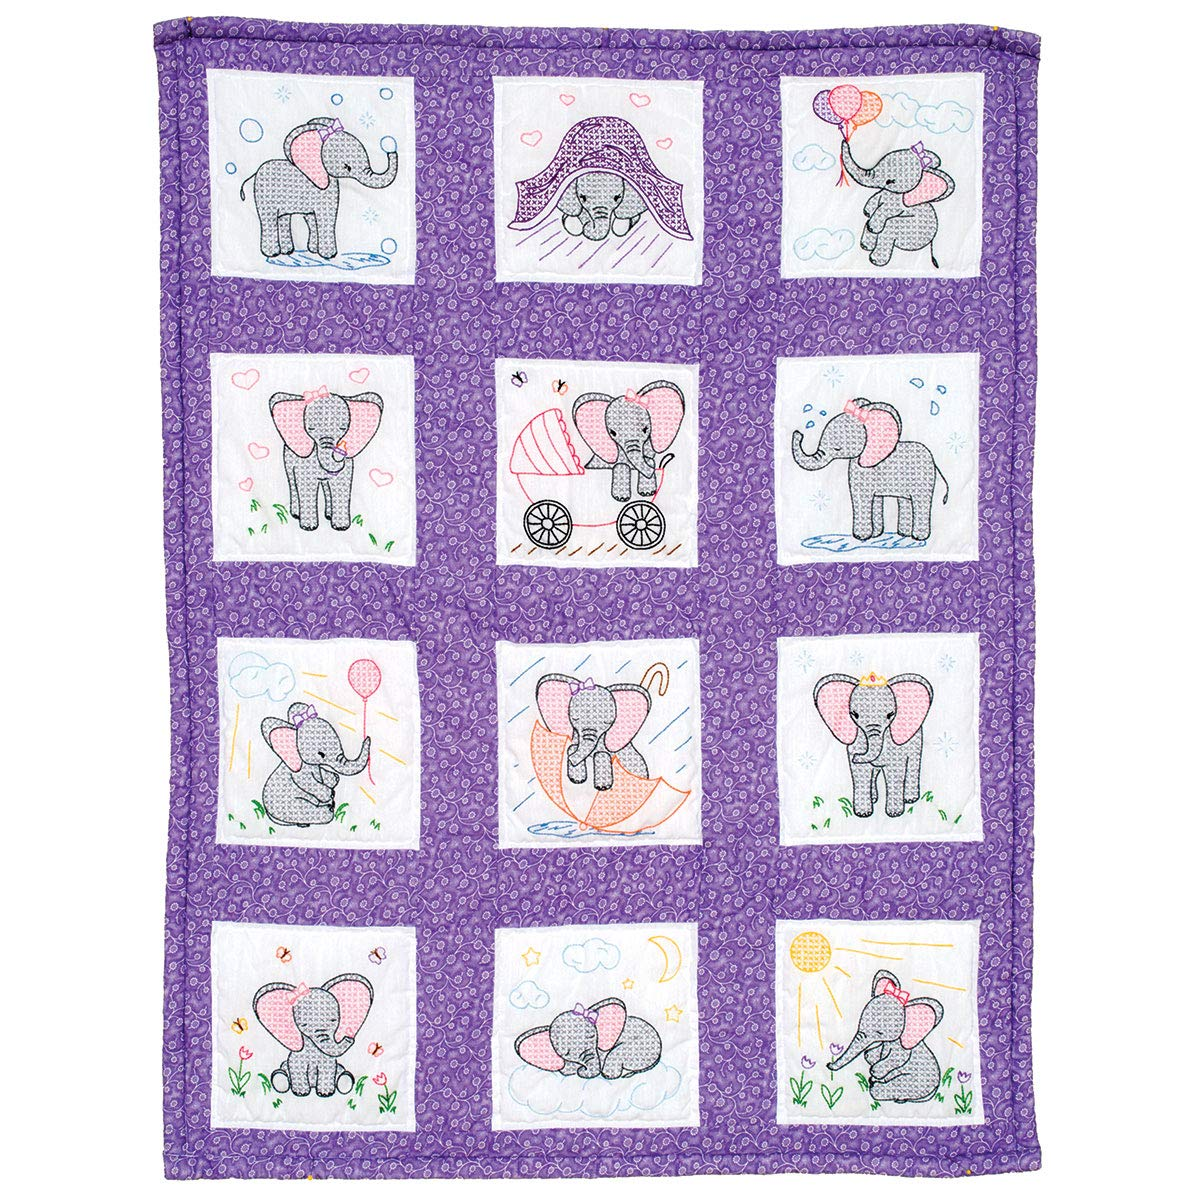 Sunbonnet Sue 9-Inch by 9-Inch Jack Dempsey Stamped White Nursery Quilt Blocks 12-Pack